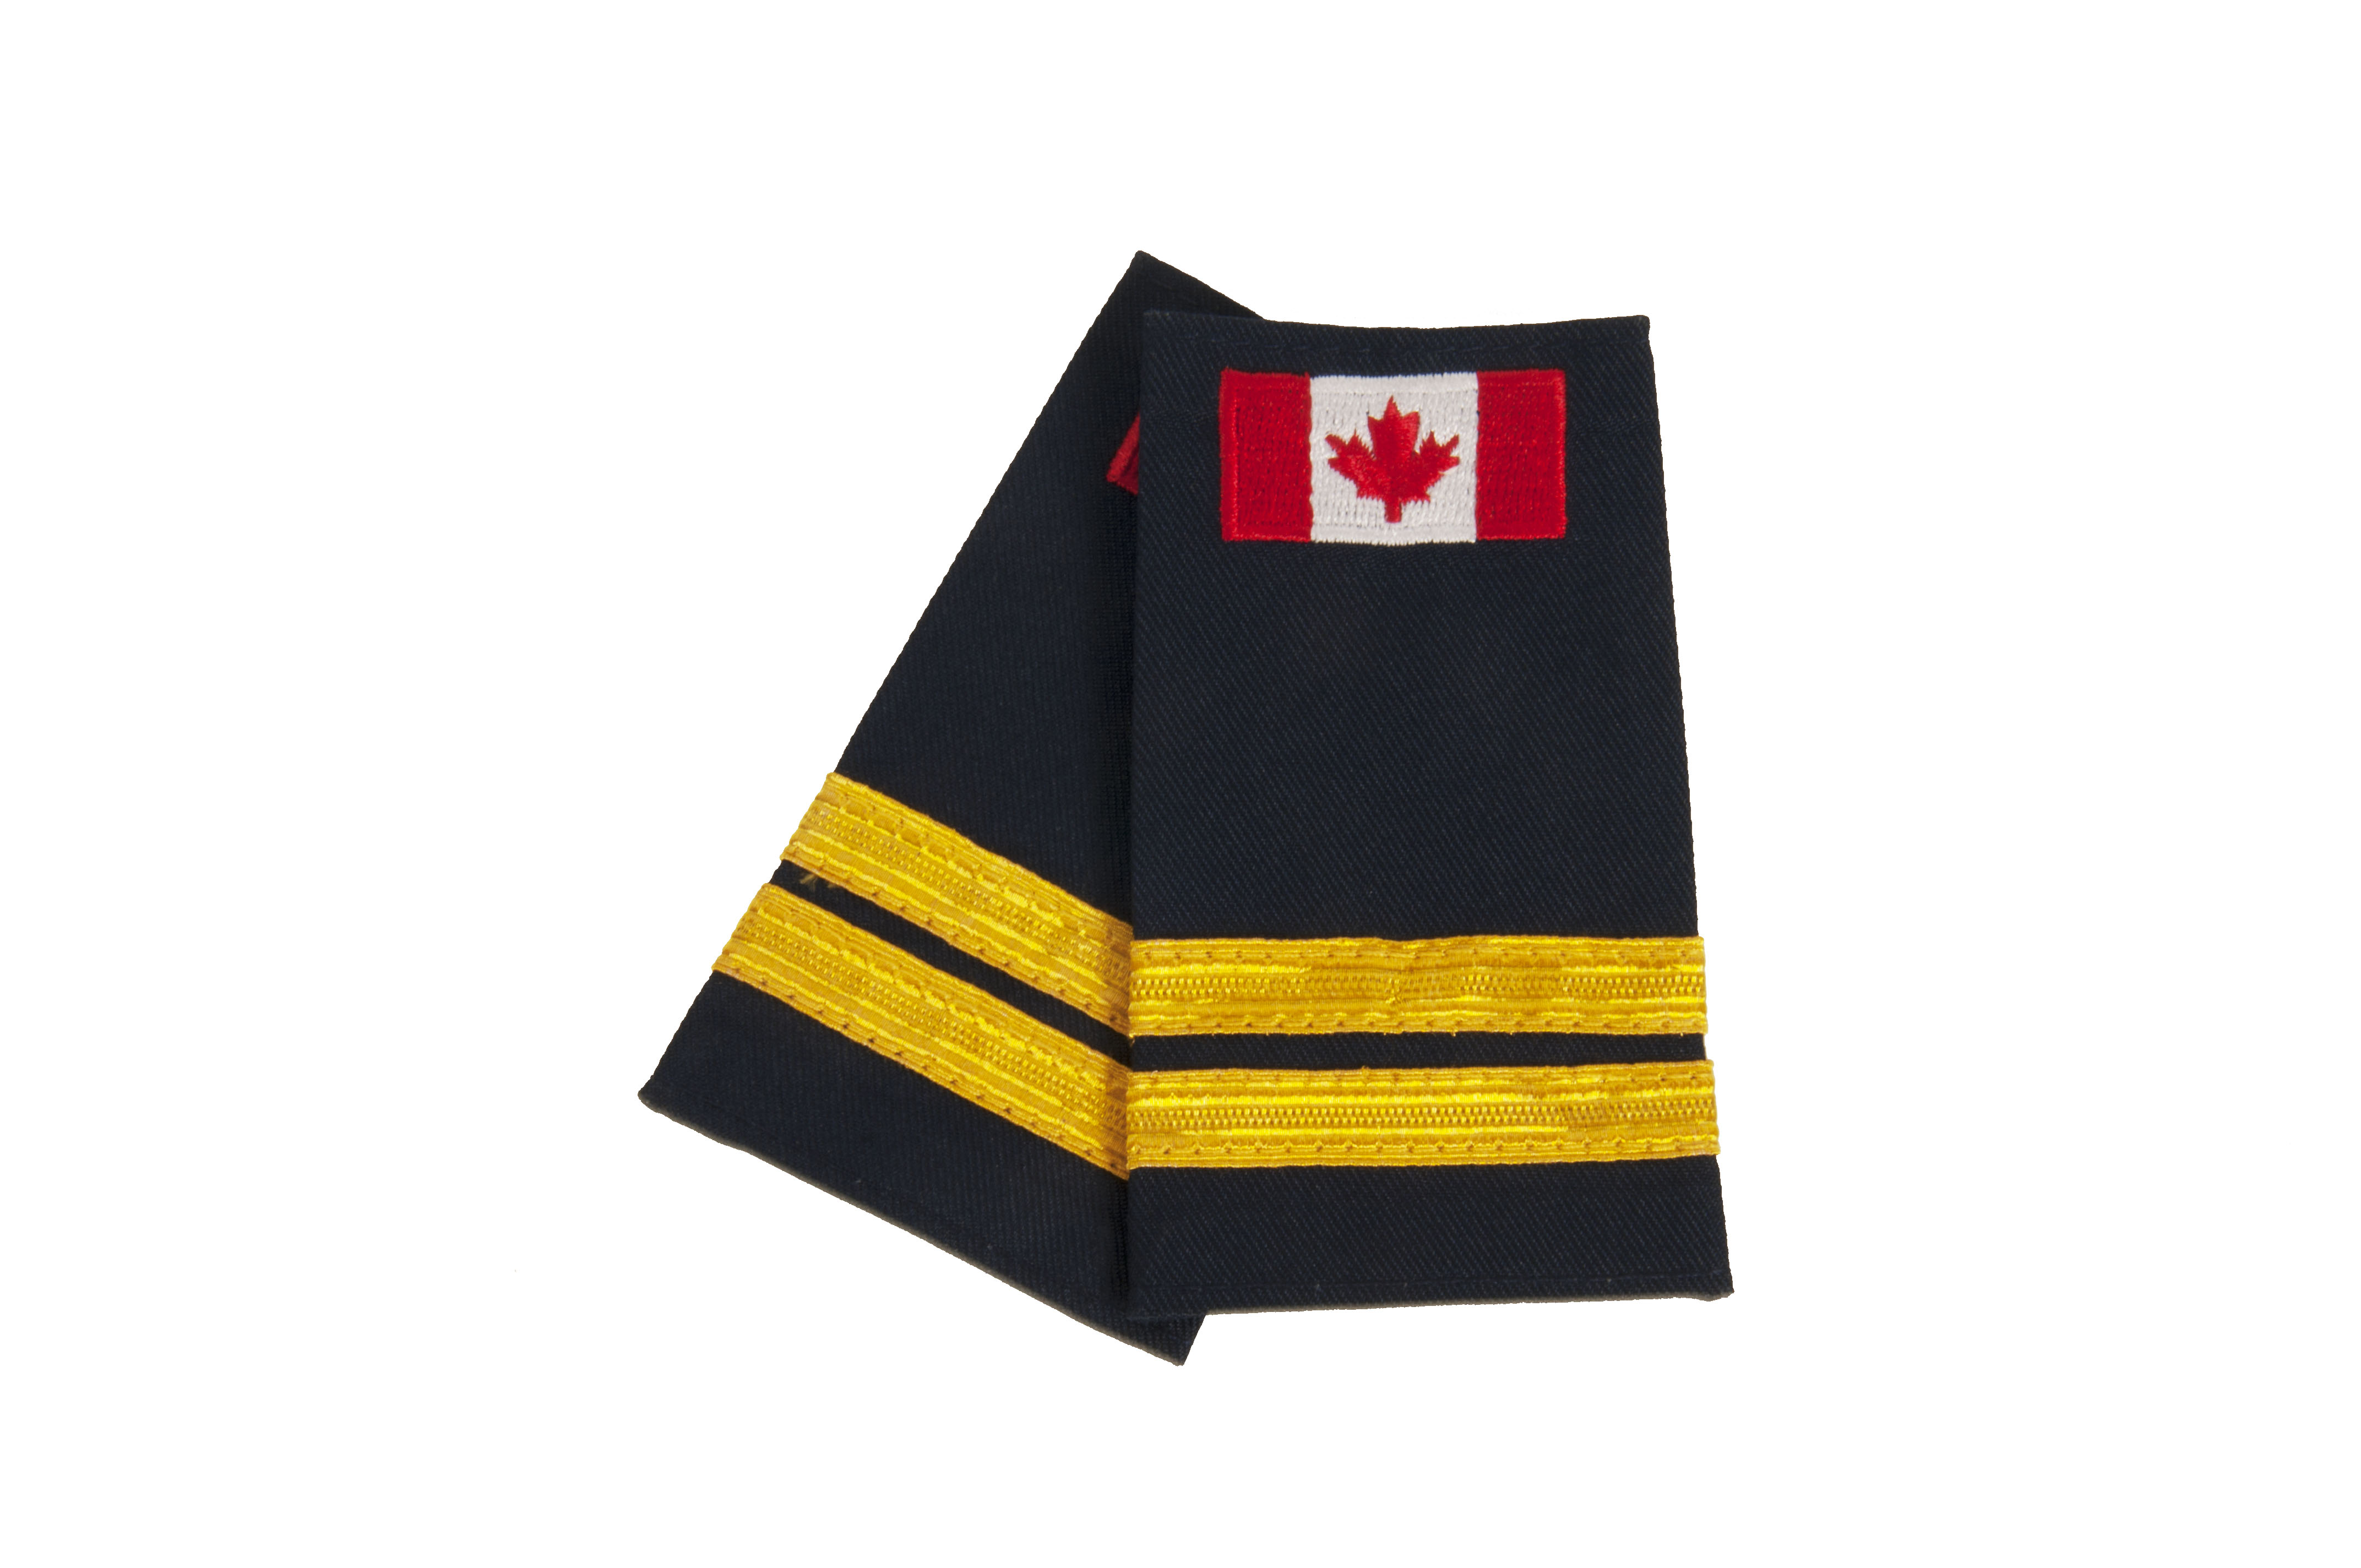 Captain Slip-On with Canadian Flag (No Text)